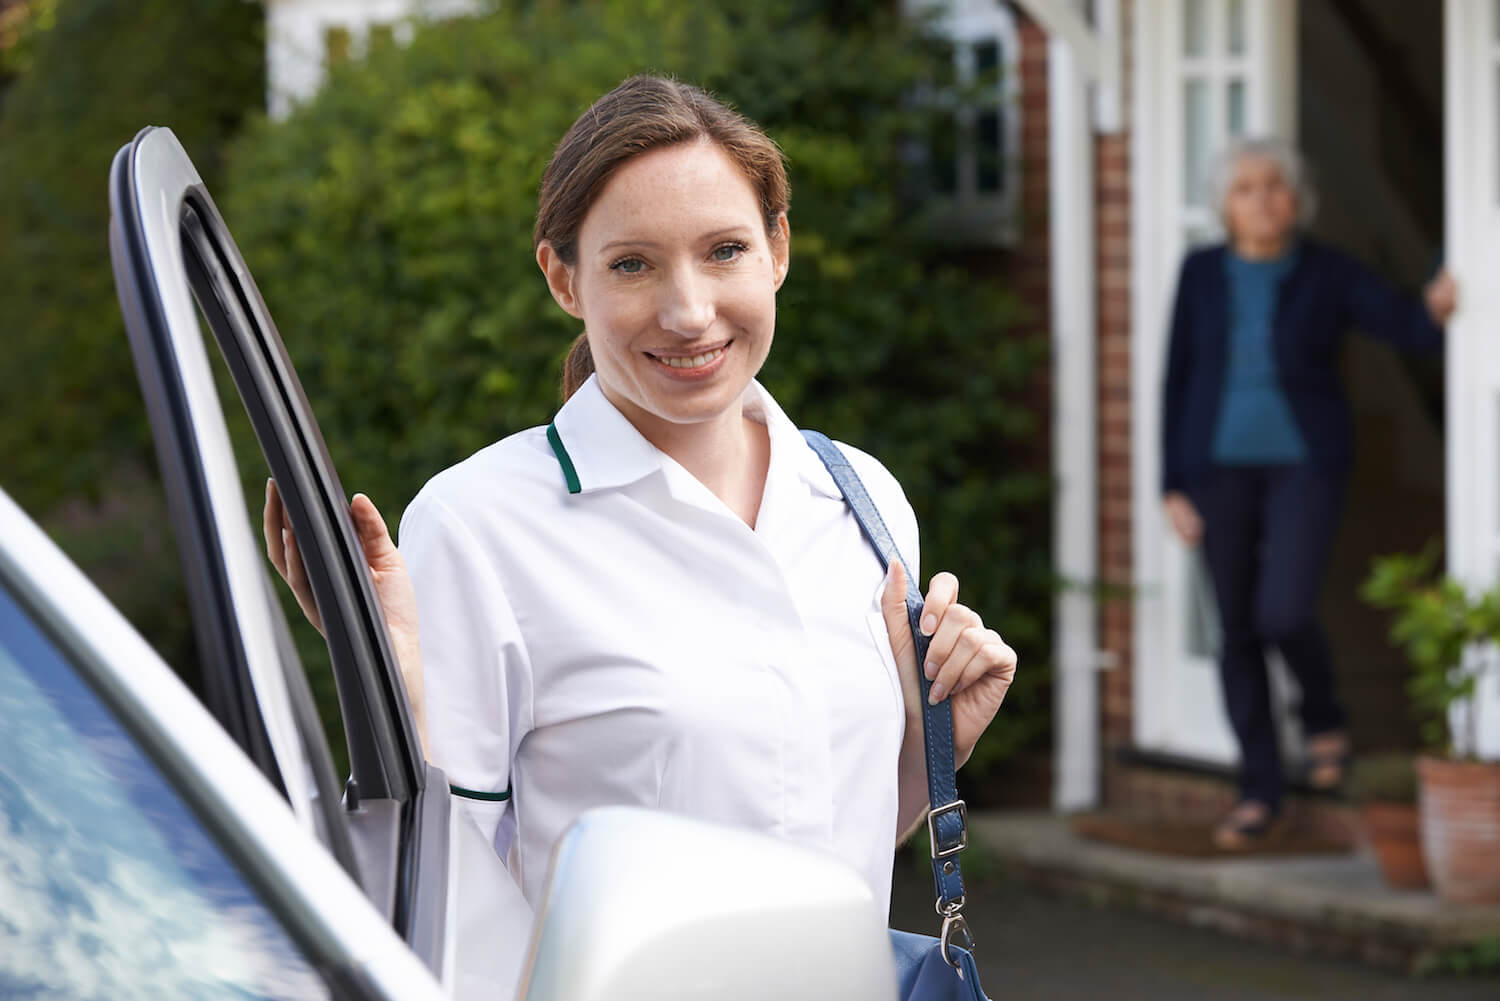 Health Care Workers who want to be the best within the Home Health Care and Senior Care Industry.